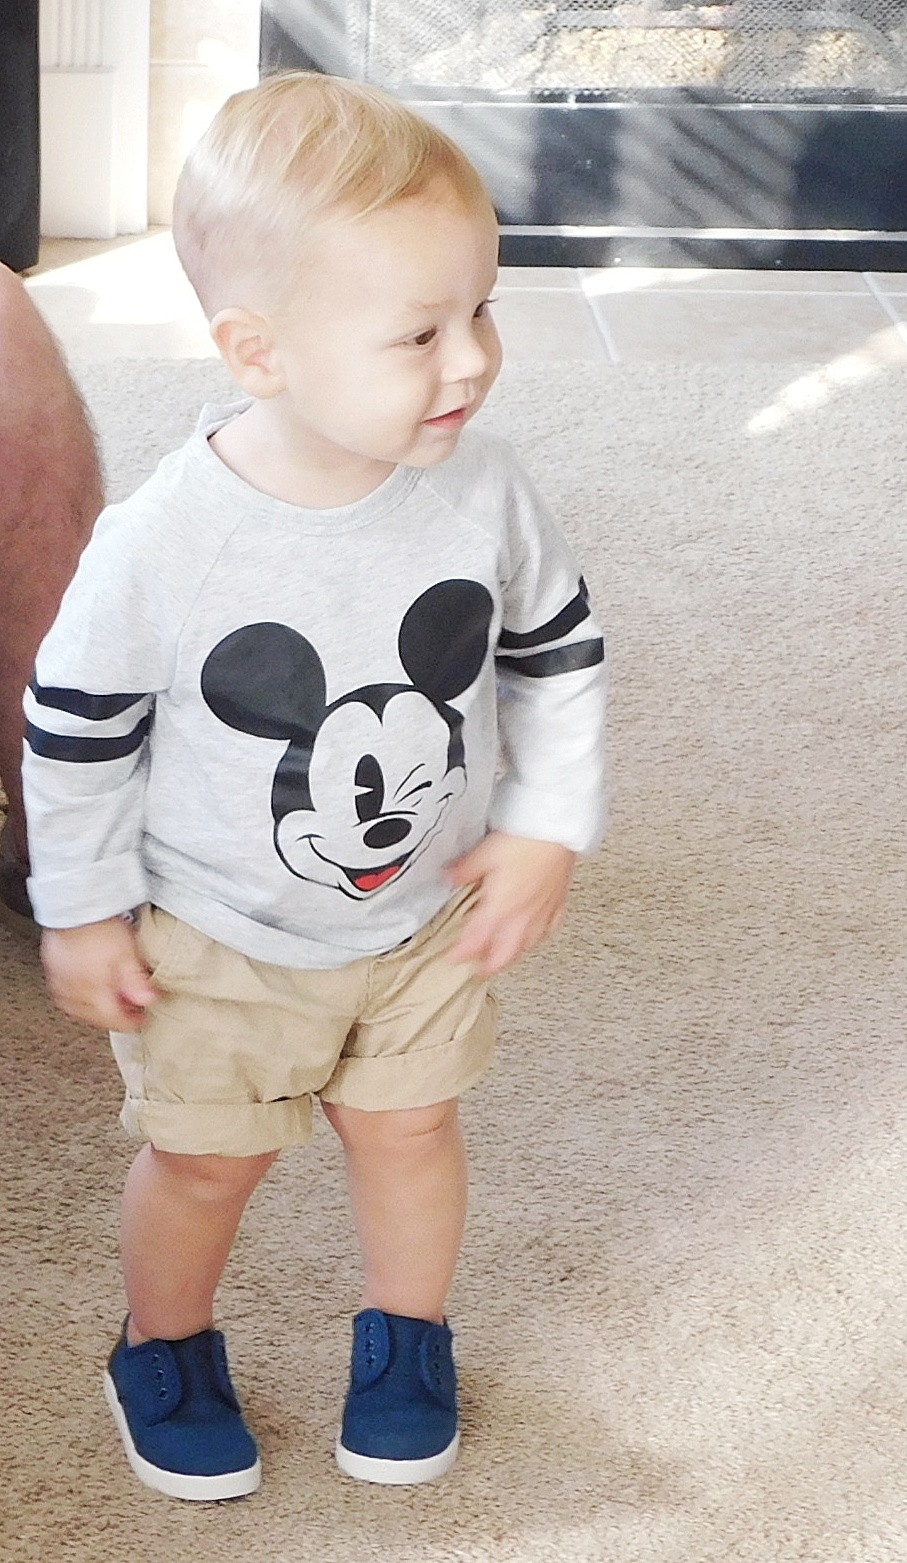 Mickey Shirt: H&M / Shoes: TOMS